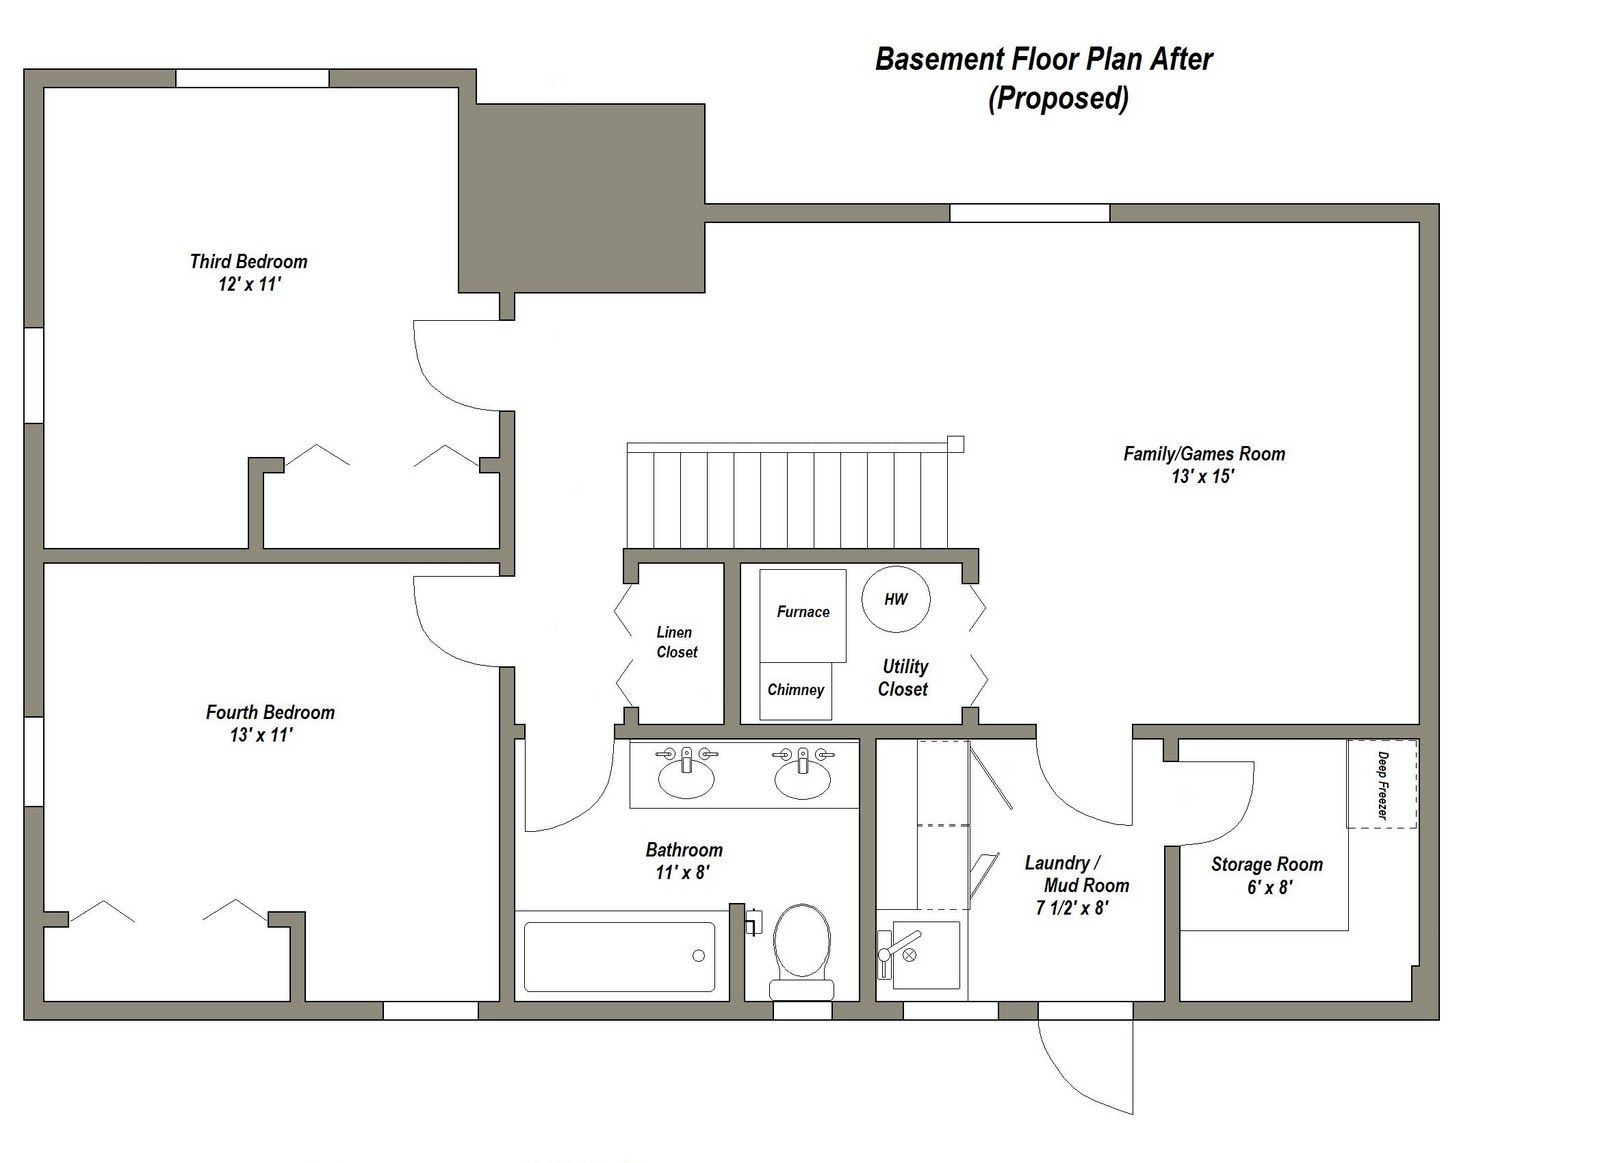 House Plans With Basement walkout basement house plans direct from the nations top home plan designers Finished Basement Floor Plans Finished Basement Floor Plans Younger Unger